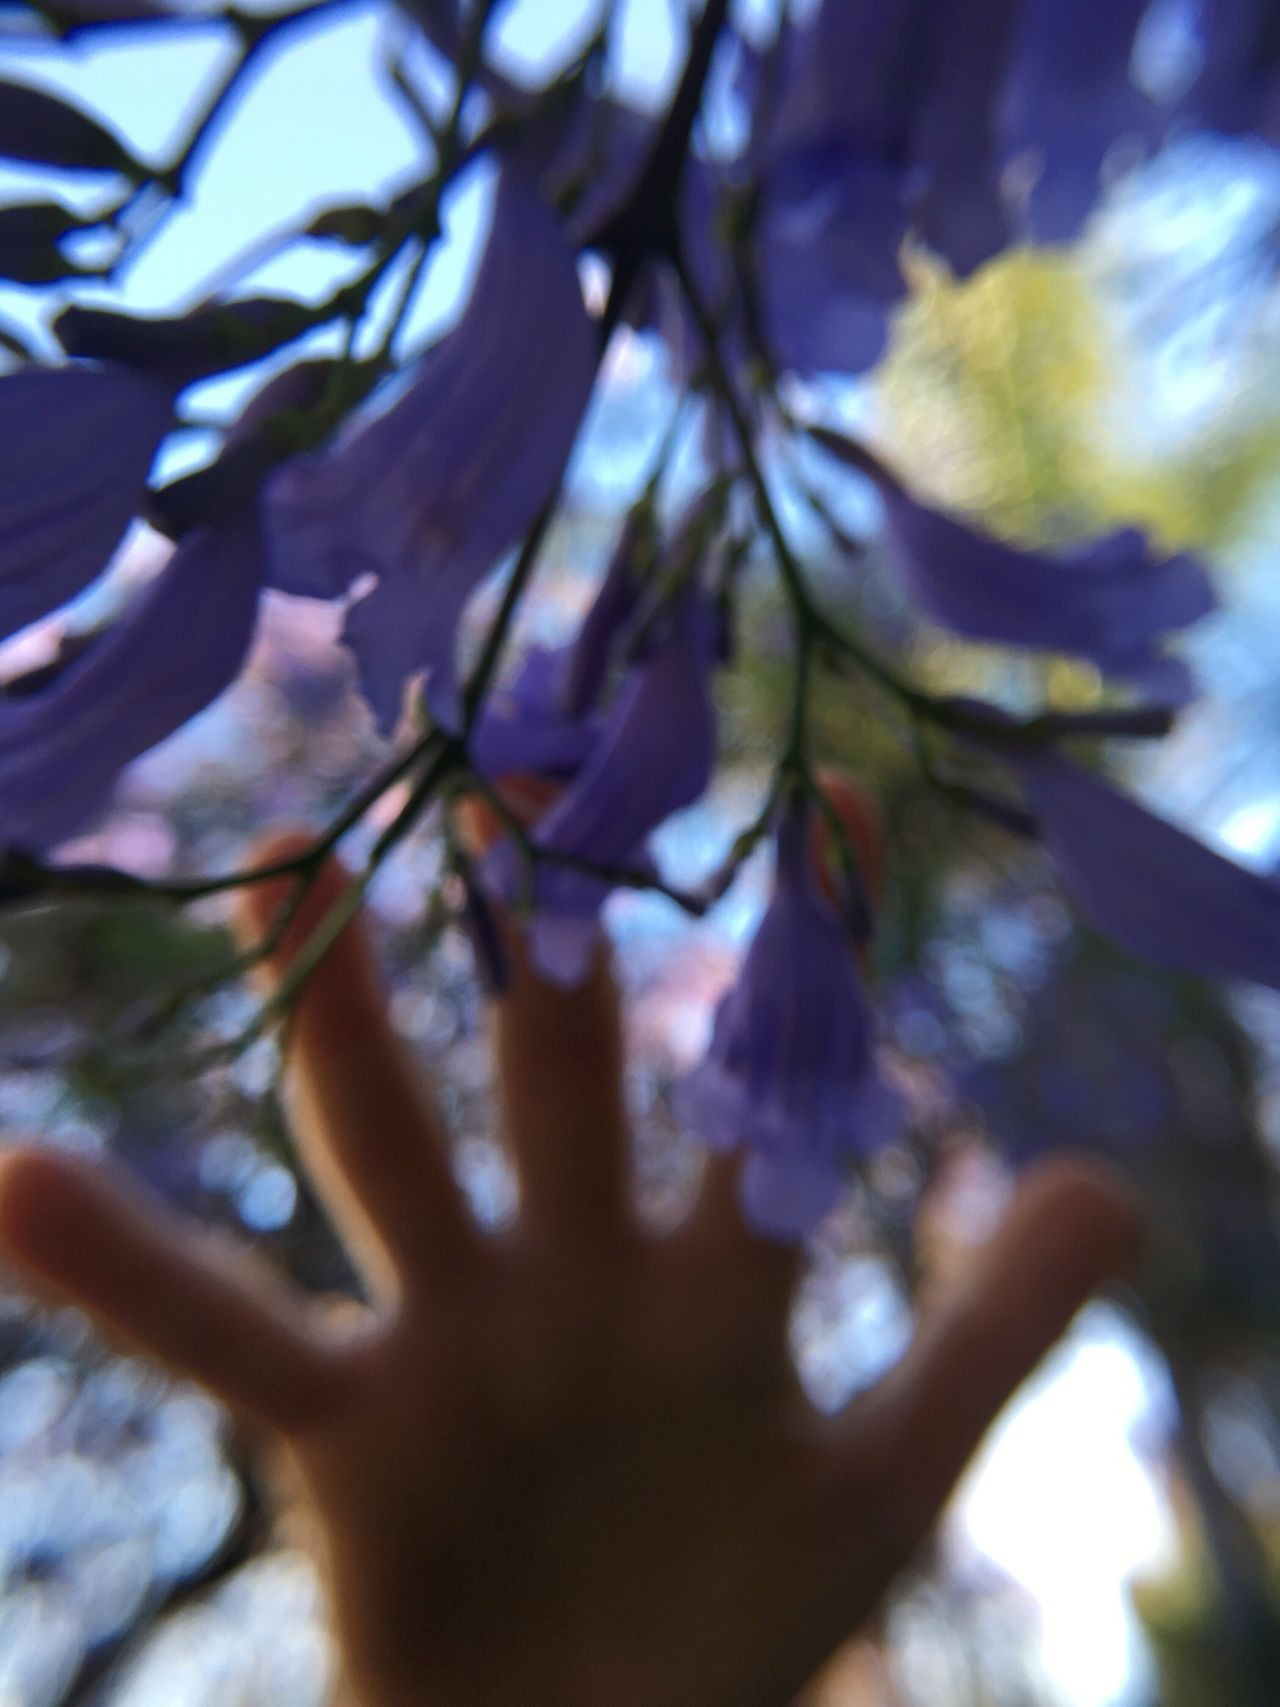 Flower Branch Nature Beauty In Nature Growth Tree Day Fragility Selective Focus Springtime Close-up Low Angle View Outdoors No People Freshness Sky Macro Plastic Lens Dreamy Reach Touch Jacaranda Purple Flower Hand Reaching